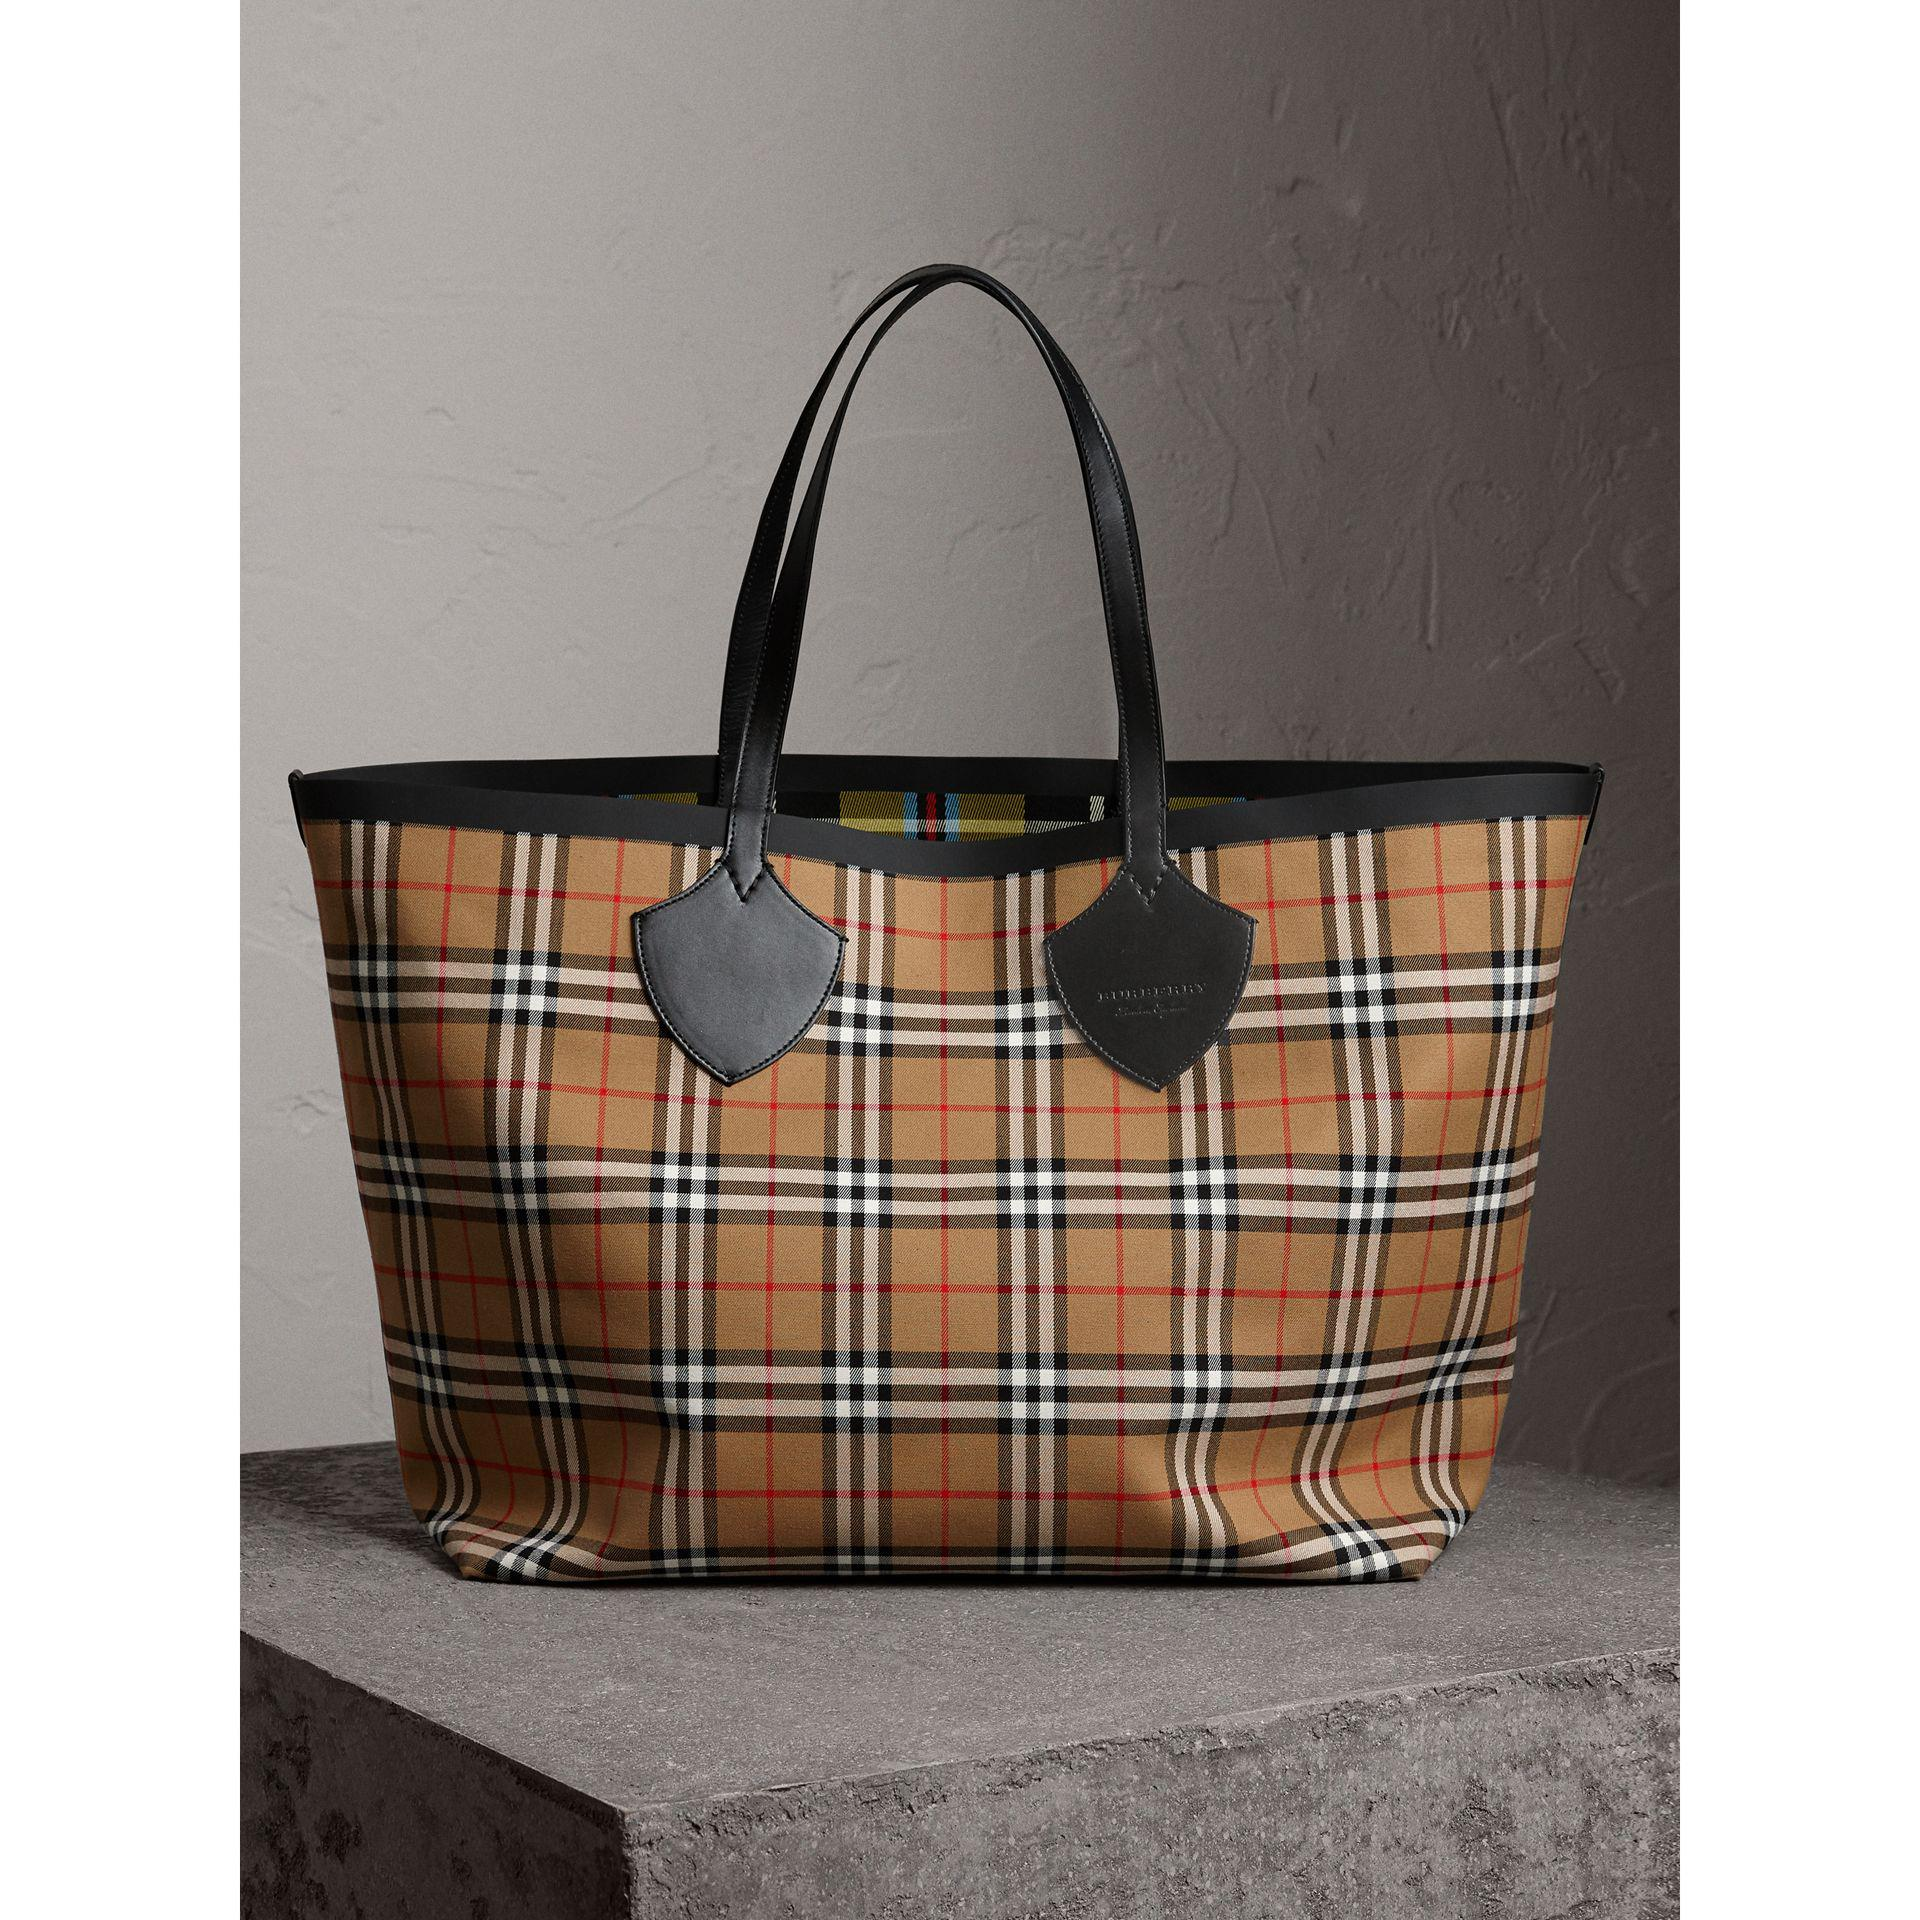 The Small Banner in Vintage Check and Leather - Yellow & Orange Burberry DzBiDVB9xv